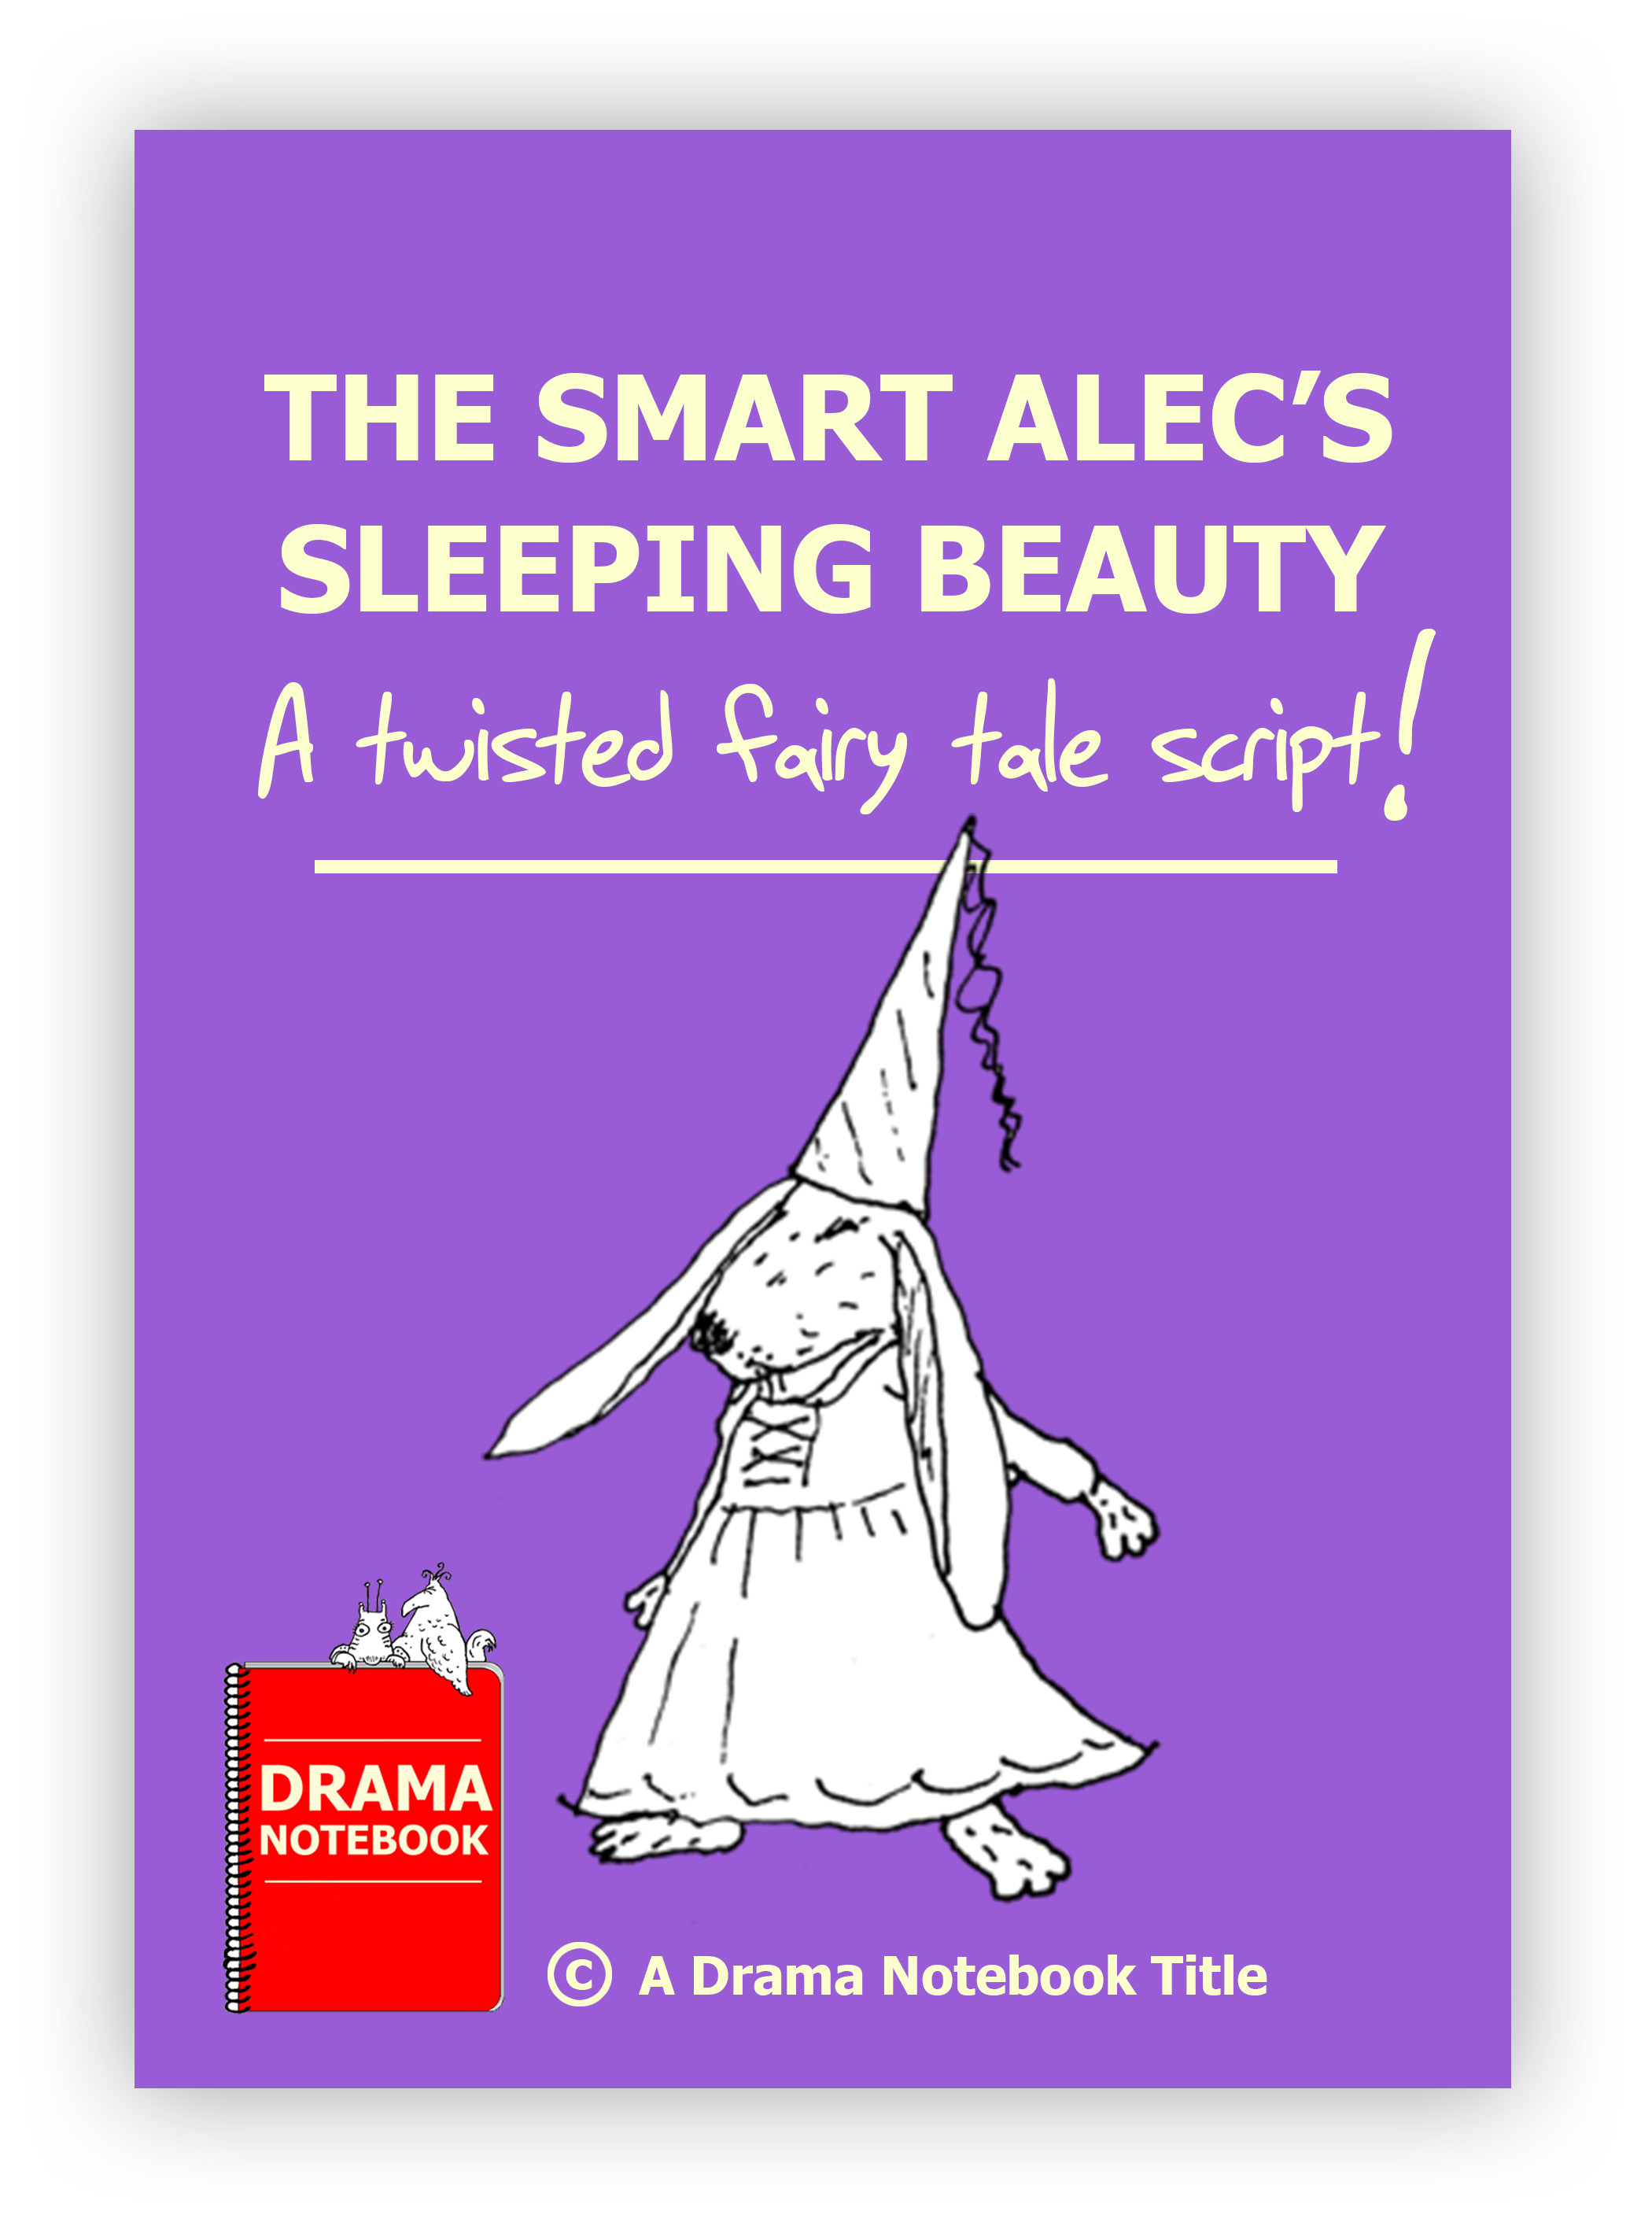 The Smart Alec's Sleeping Beauty